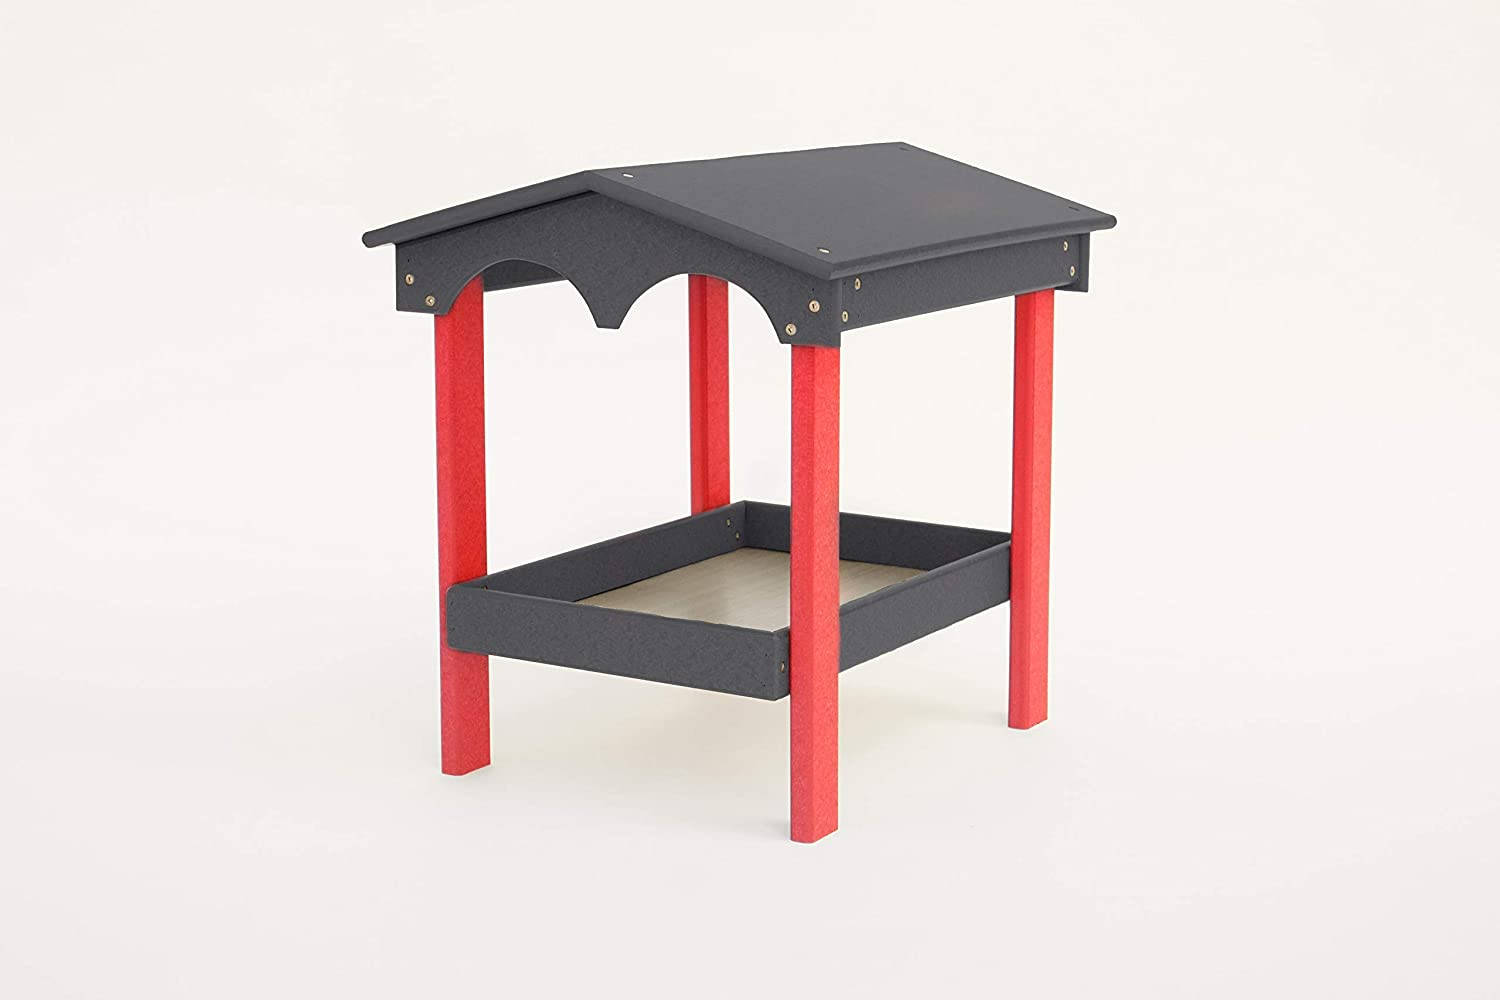 DutchCrafters Amish Poly Covered Ground Feeder (Dark Gray & Bright Red)